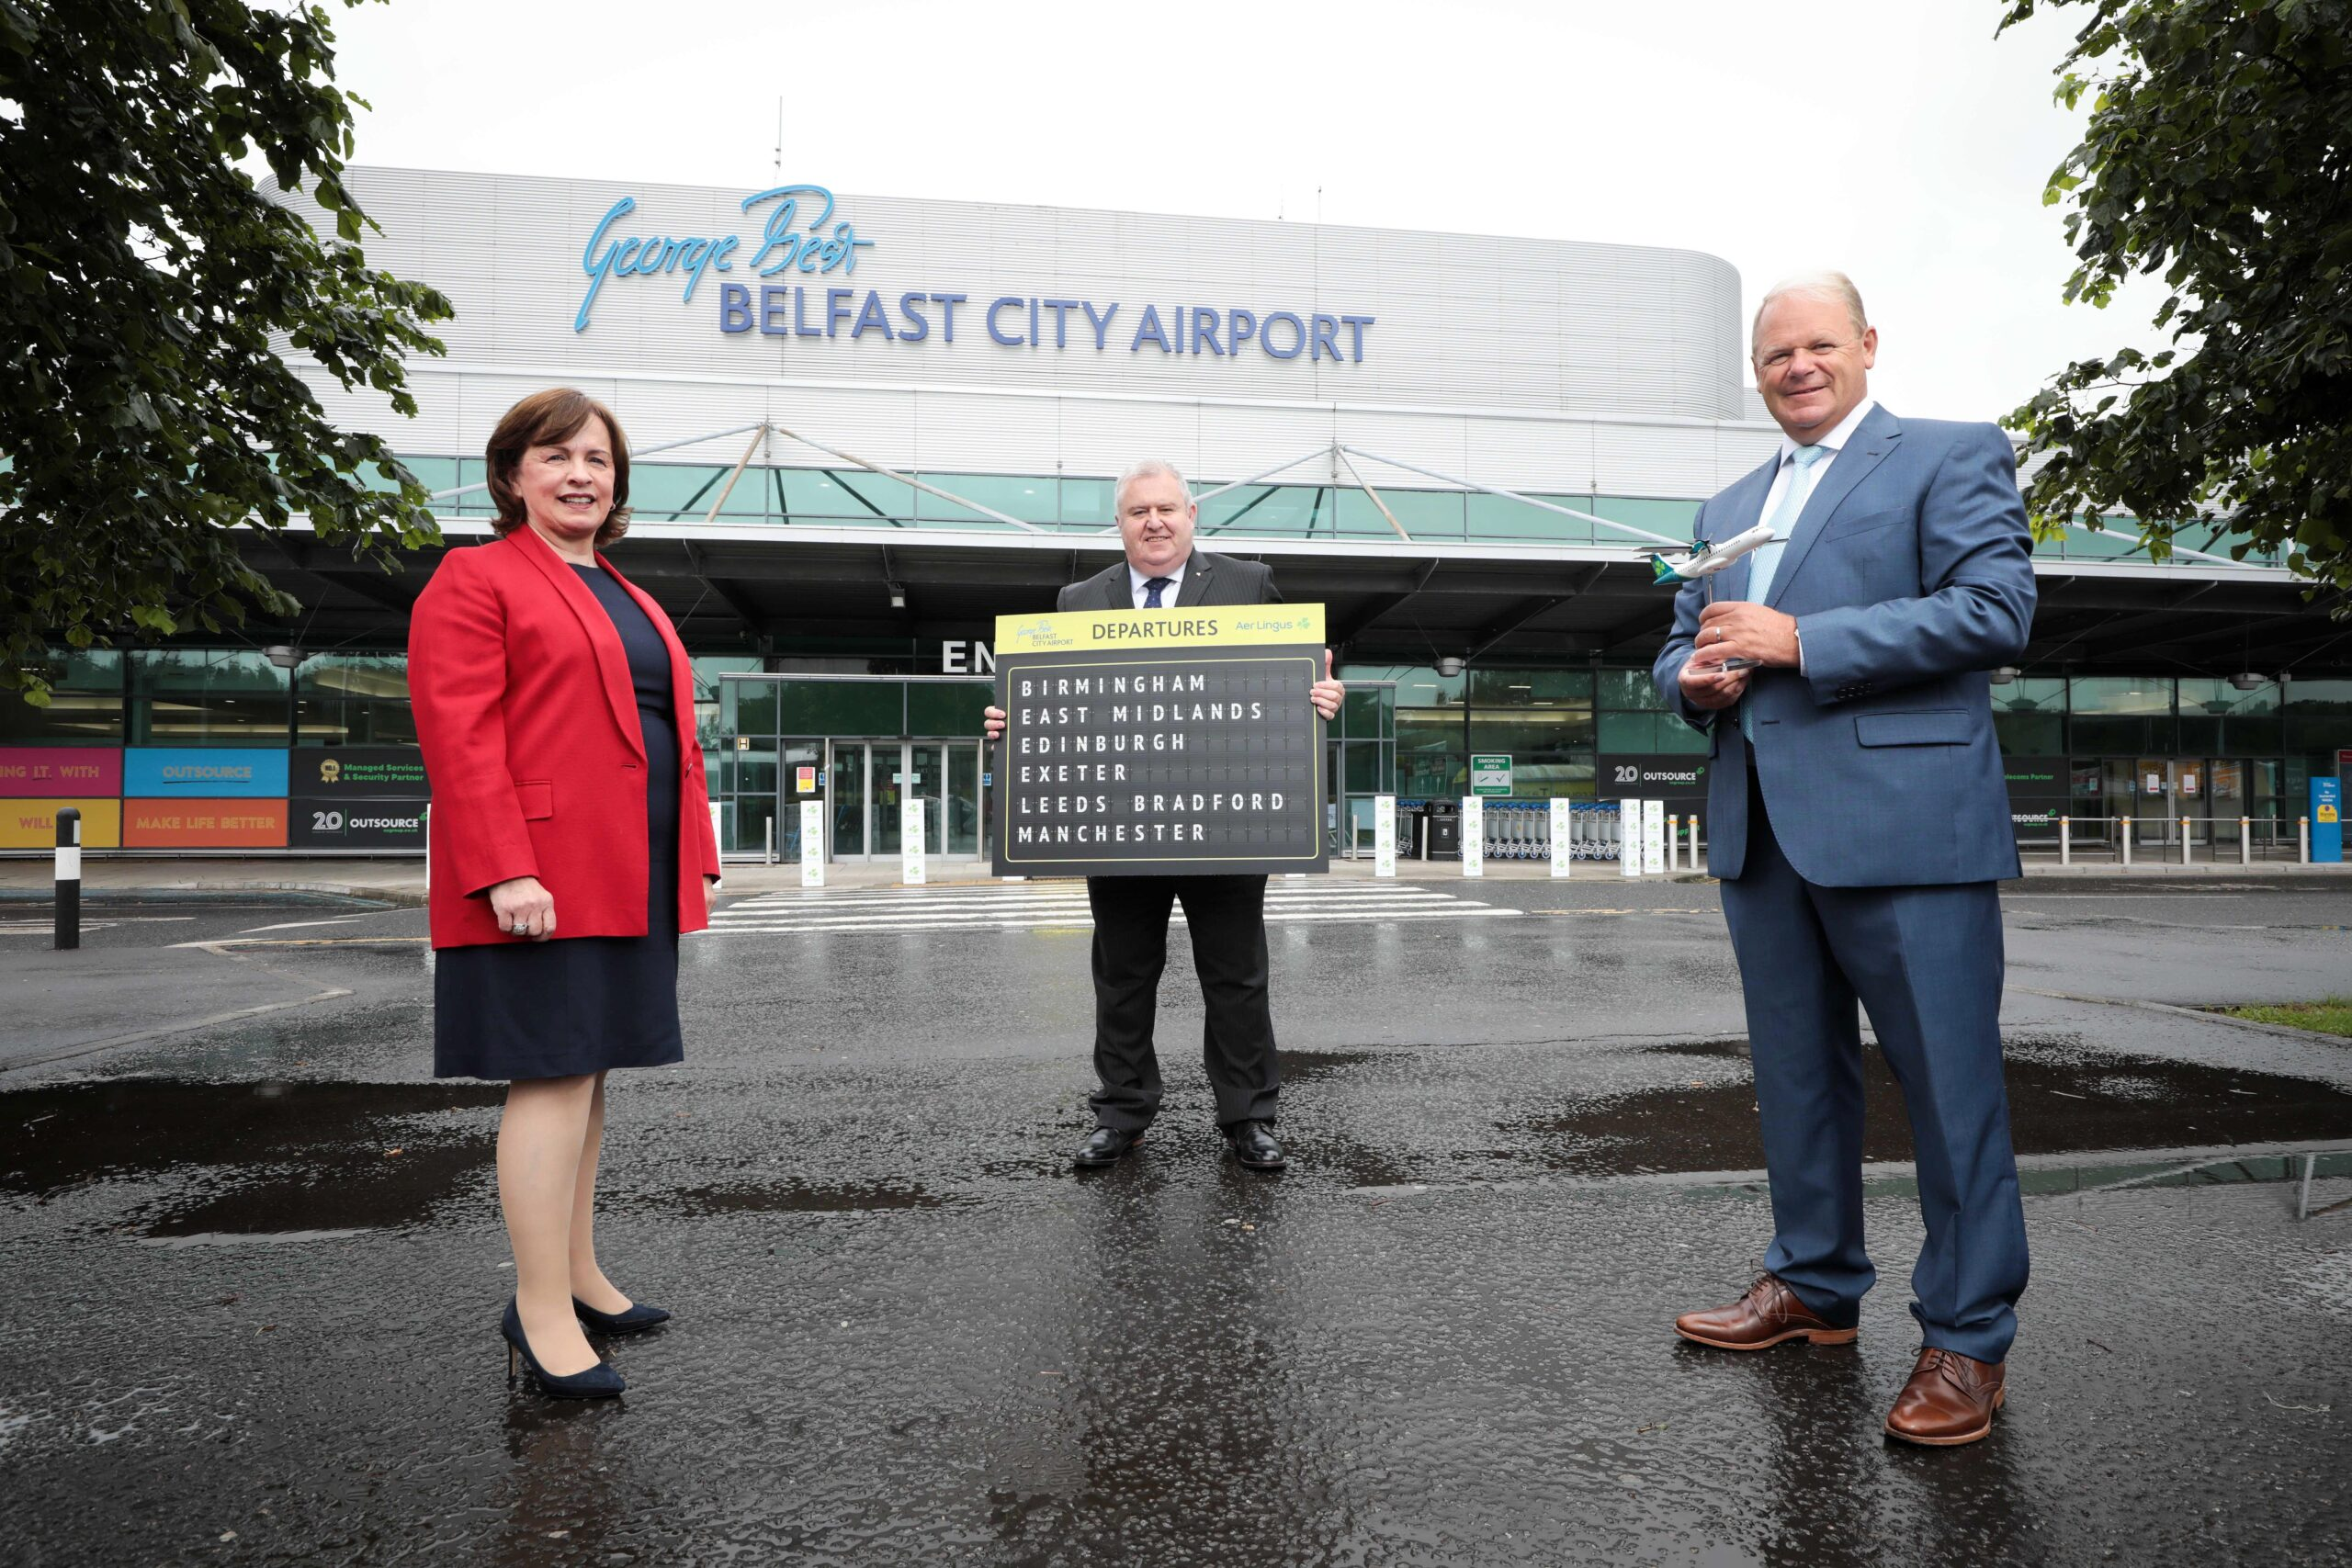 Minister - Belfast City Airport - Newry newspaper